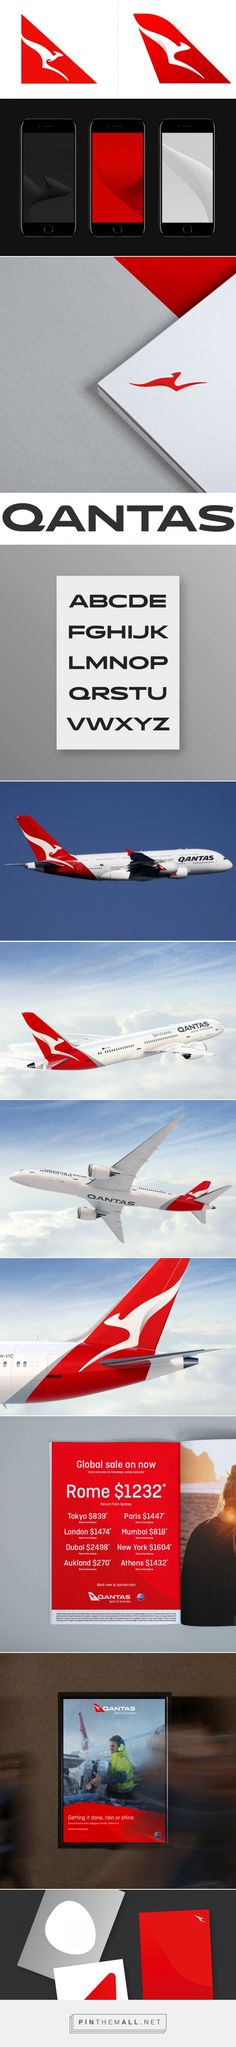 Brand New: New Logo, Identity, and Livery for Qantas by Houston Group - created via https://pinthemall.net